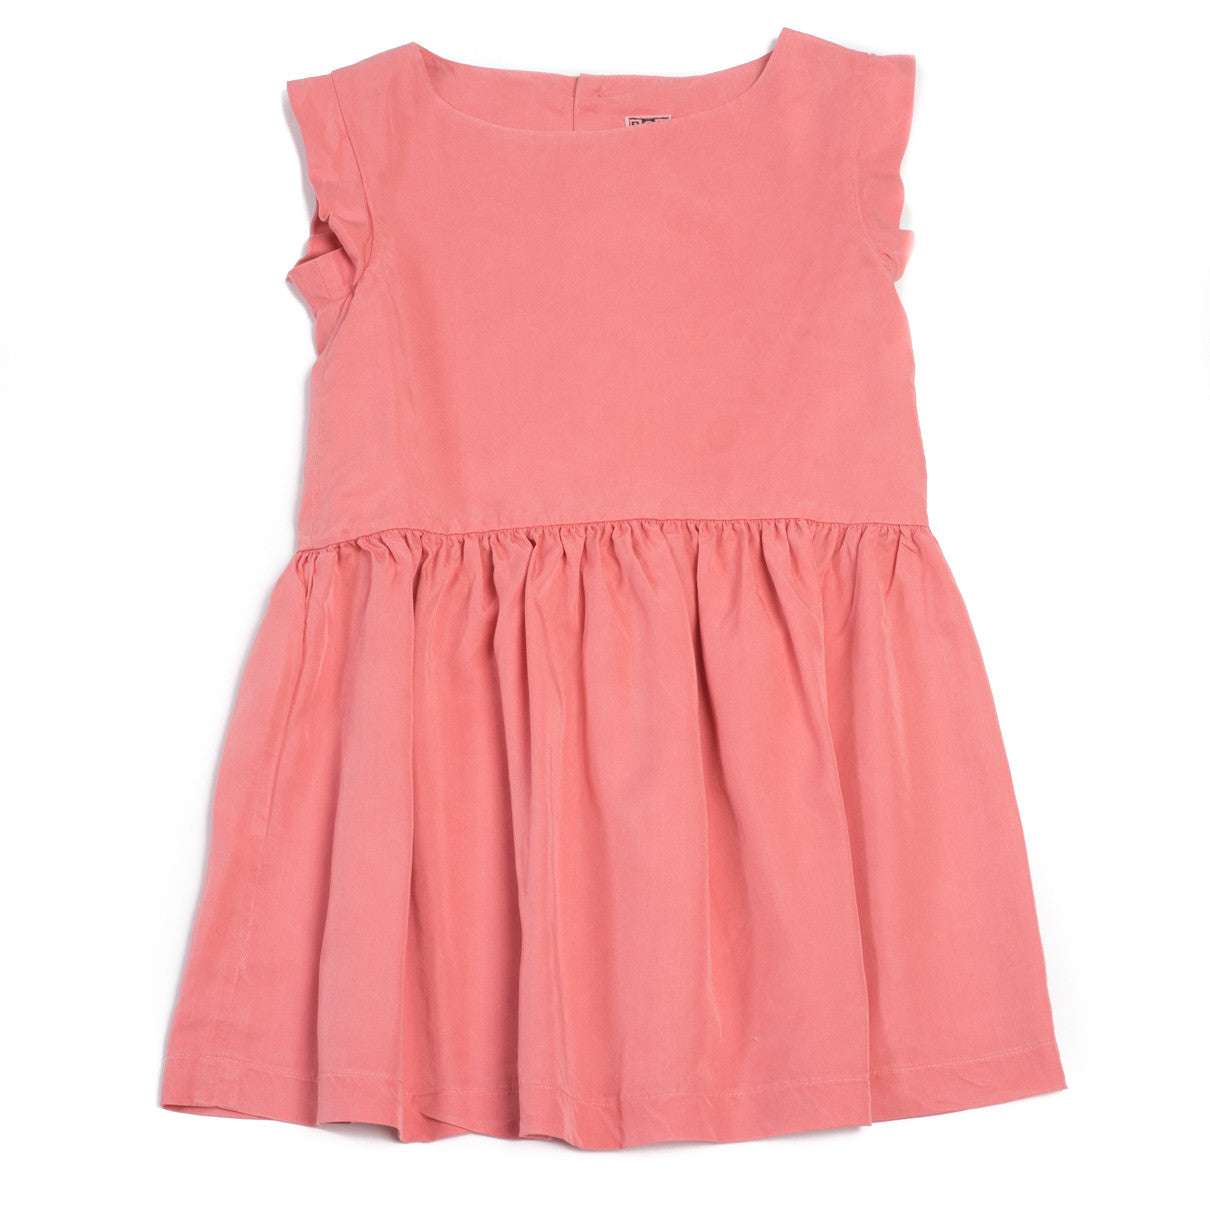 Bonton Rose Twill Cotton Dress - Ladida